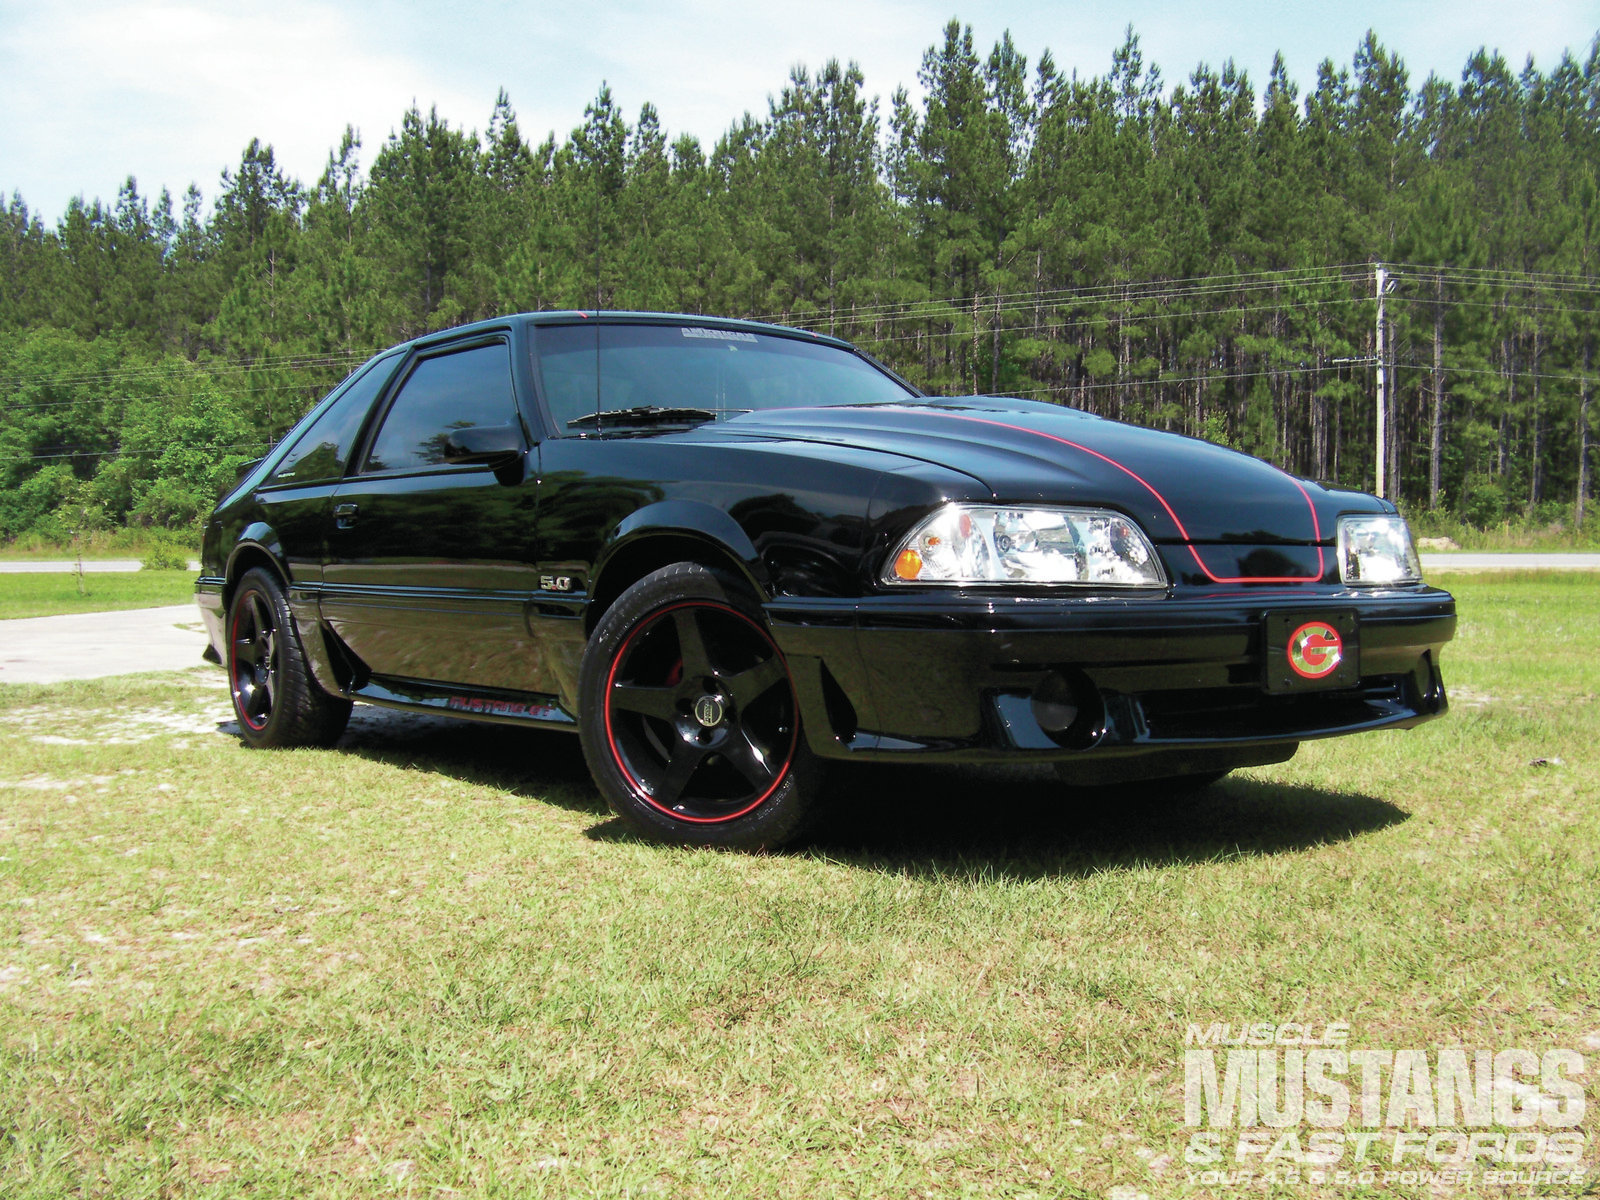 1993 Ford Mustang GT photo - 3